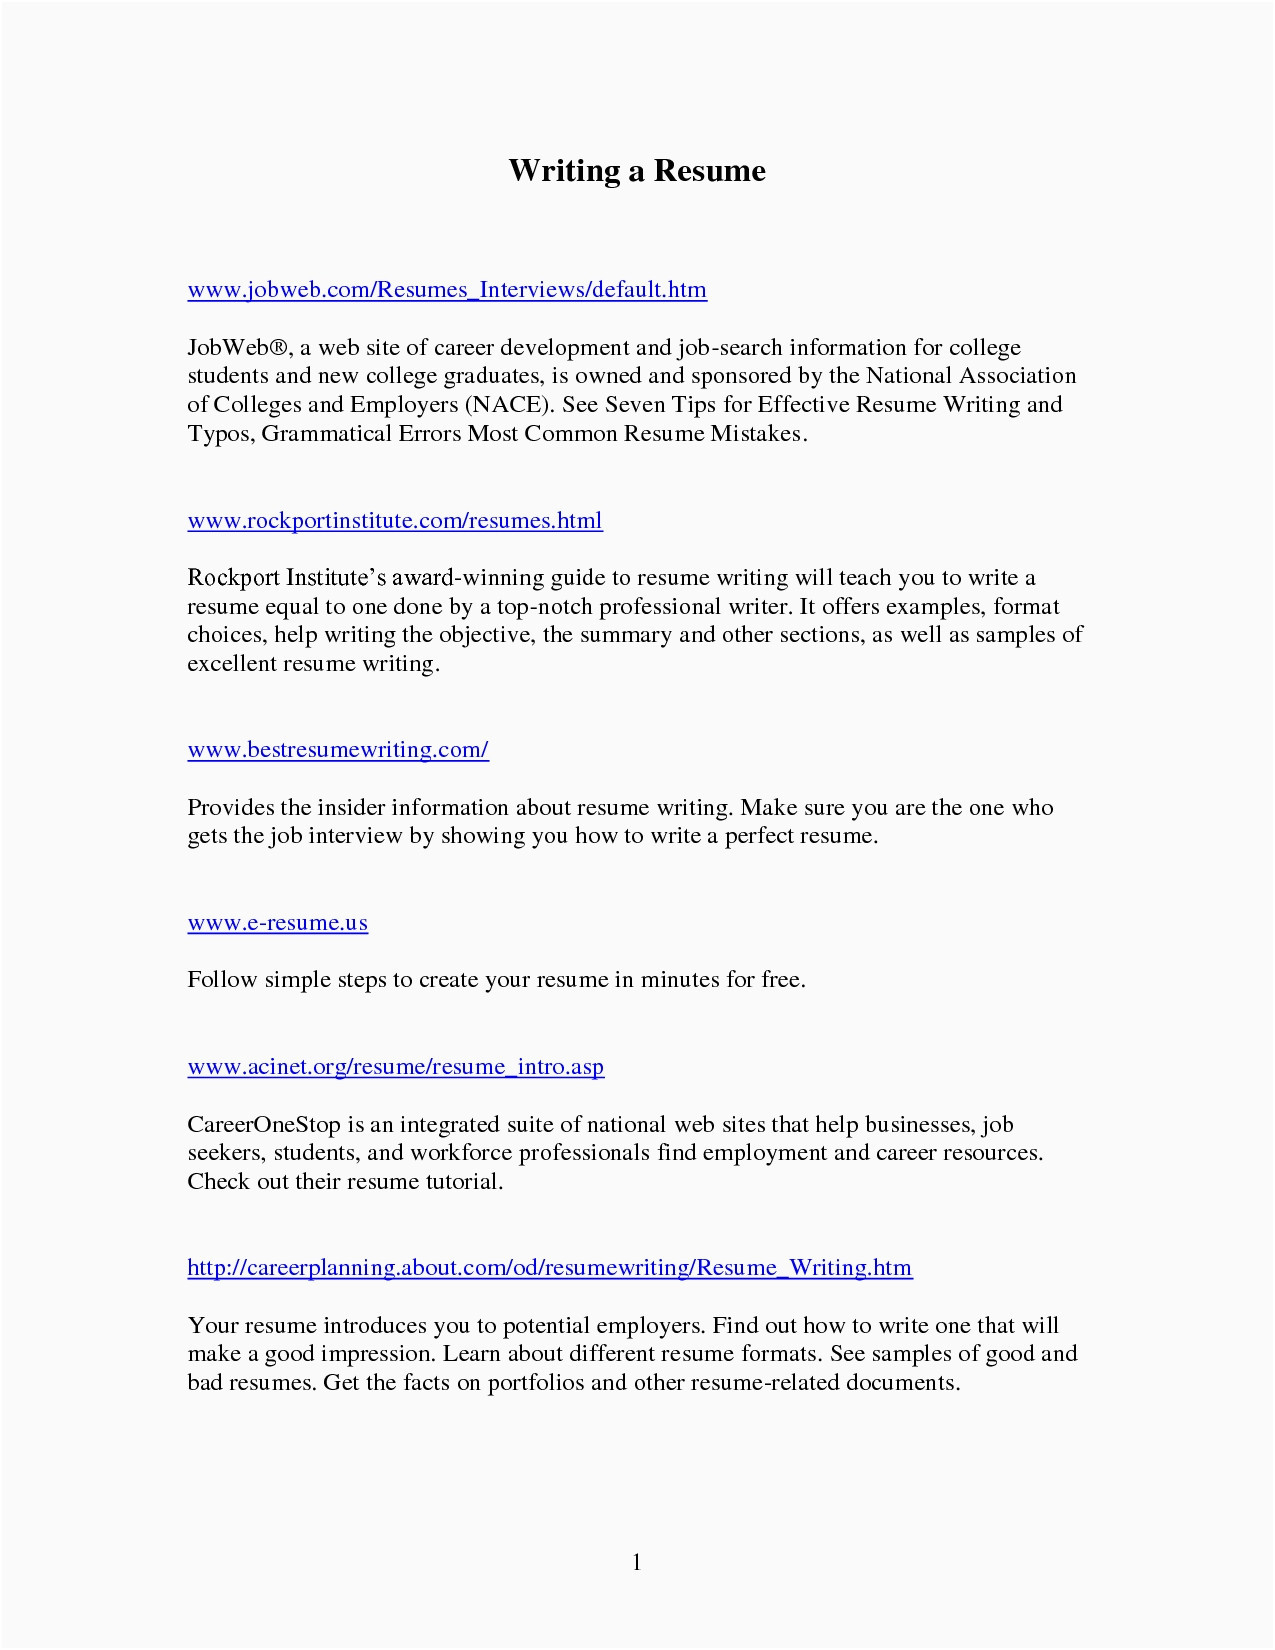 Online Resume Writing Services - Professional association Resume Writers Example Resume Writers